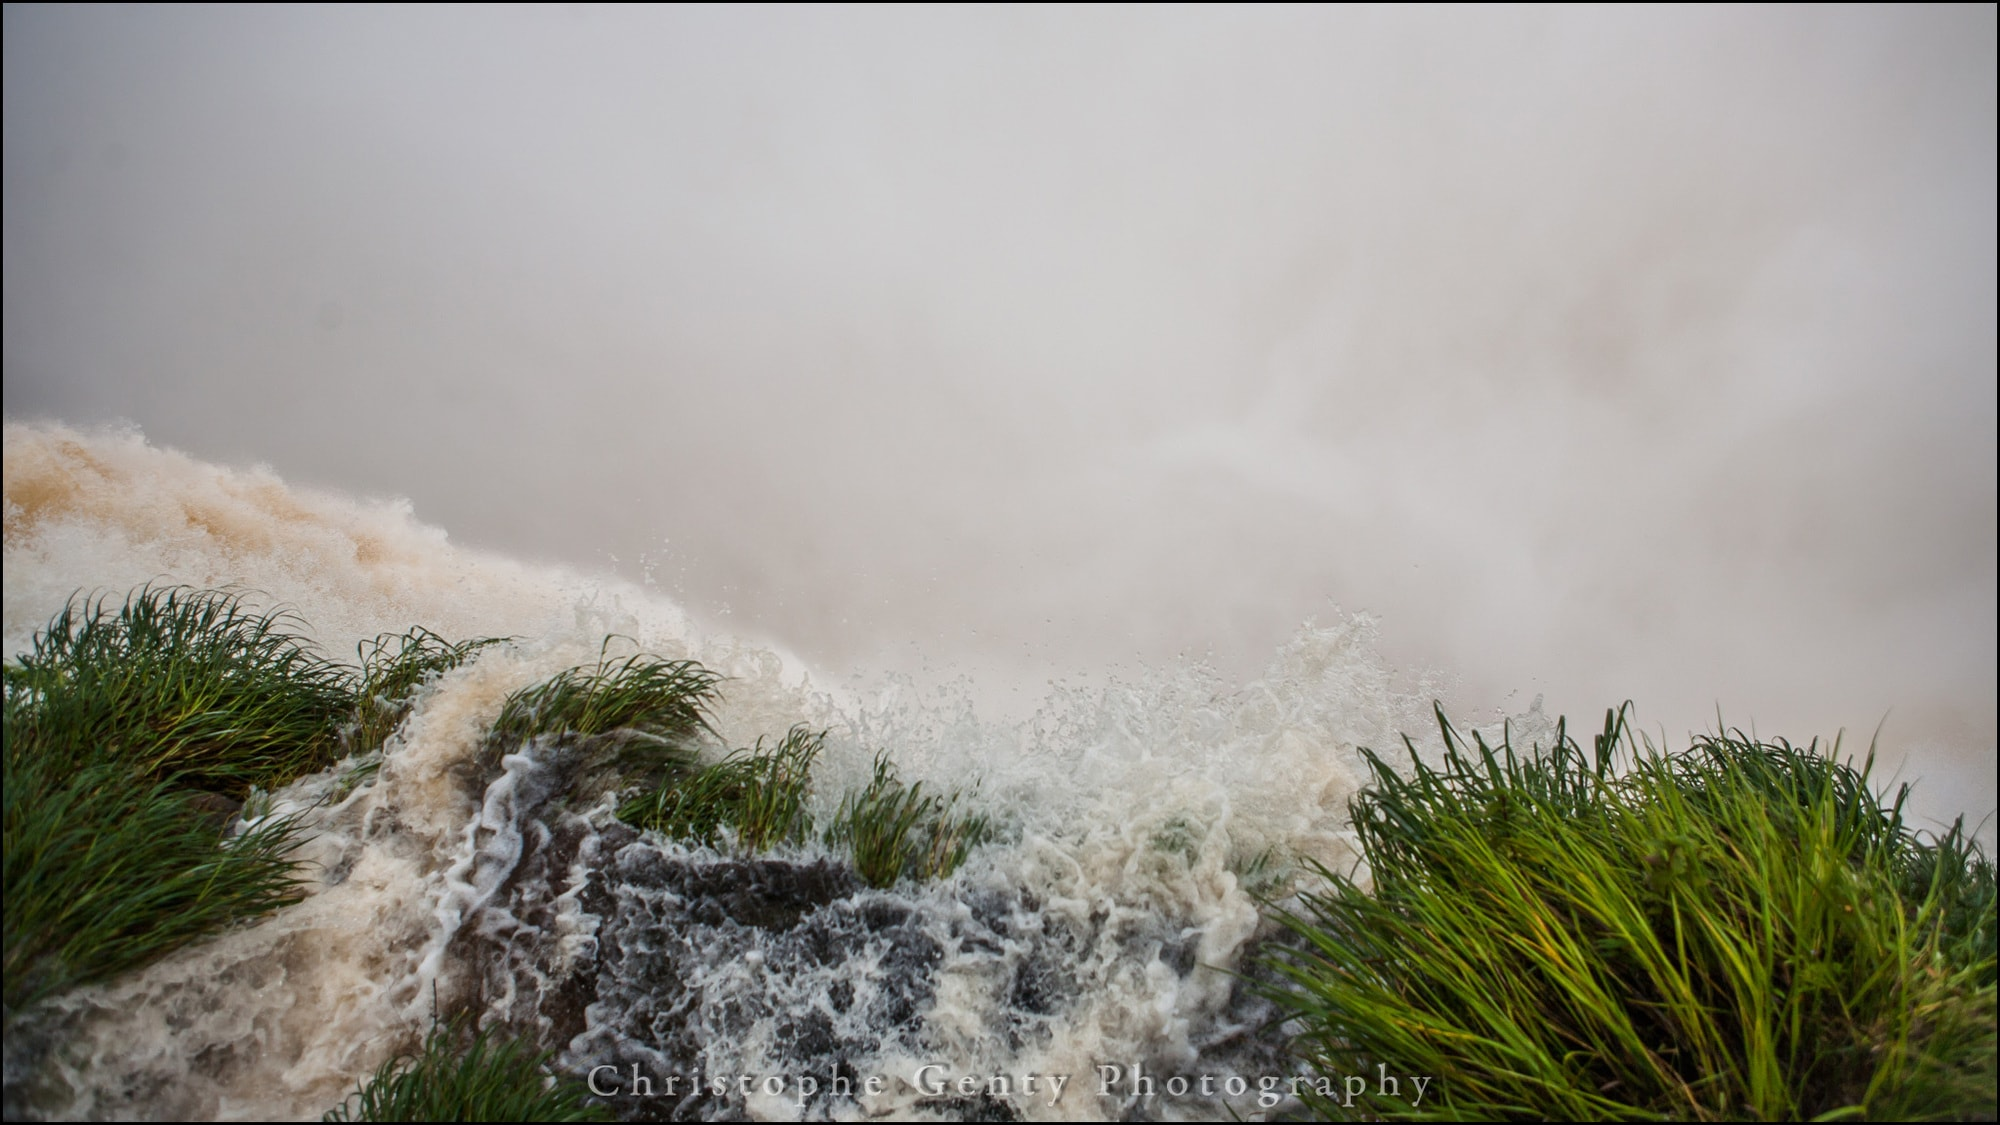 Devil's Throat, Iguazu Falls, Argentina - December 2015